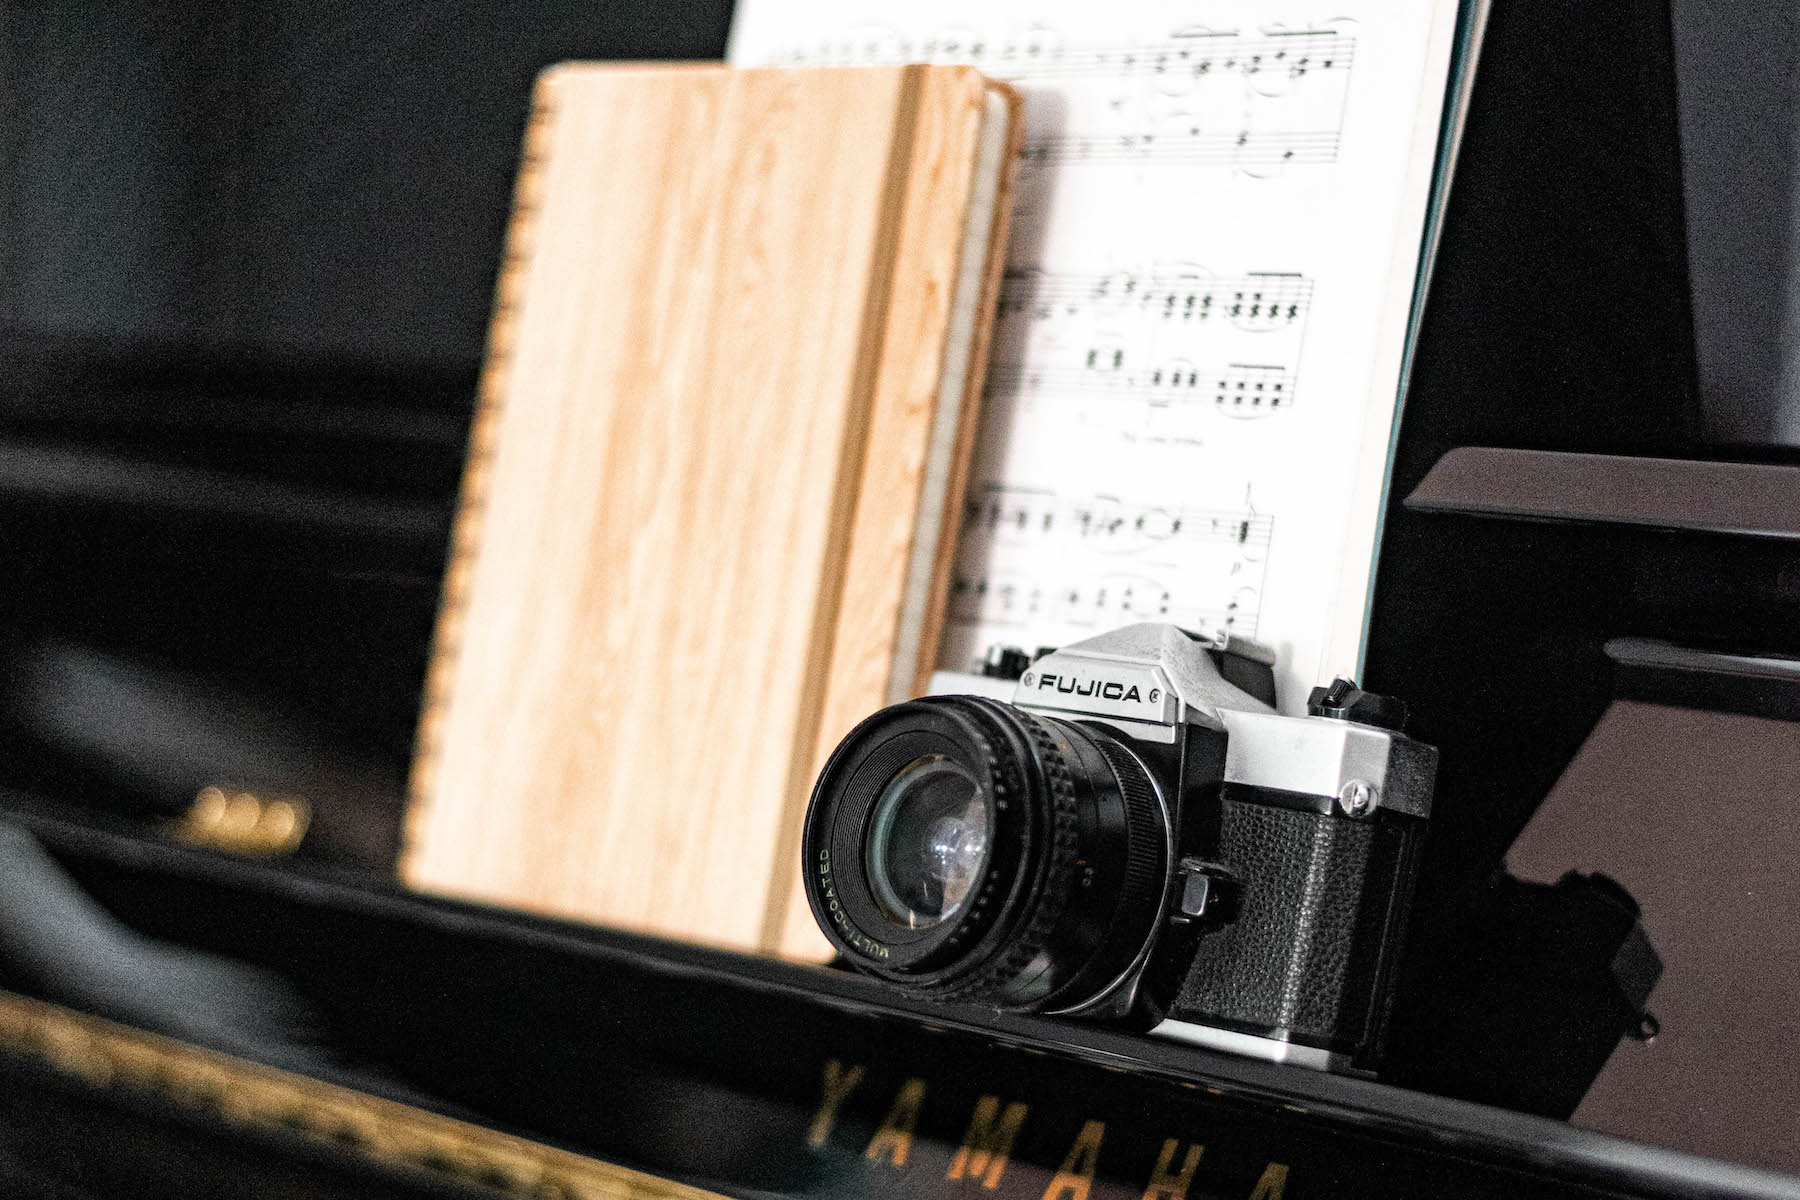 Fujica SLR on piano music desk | madofmint.net